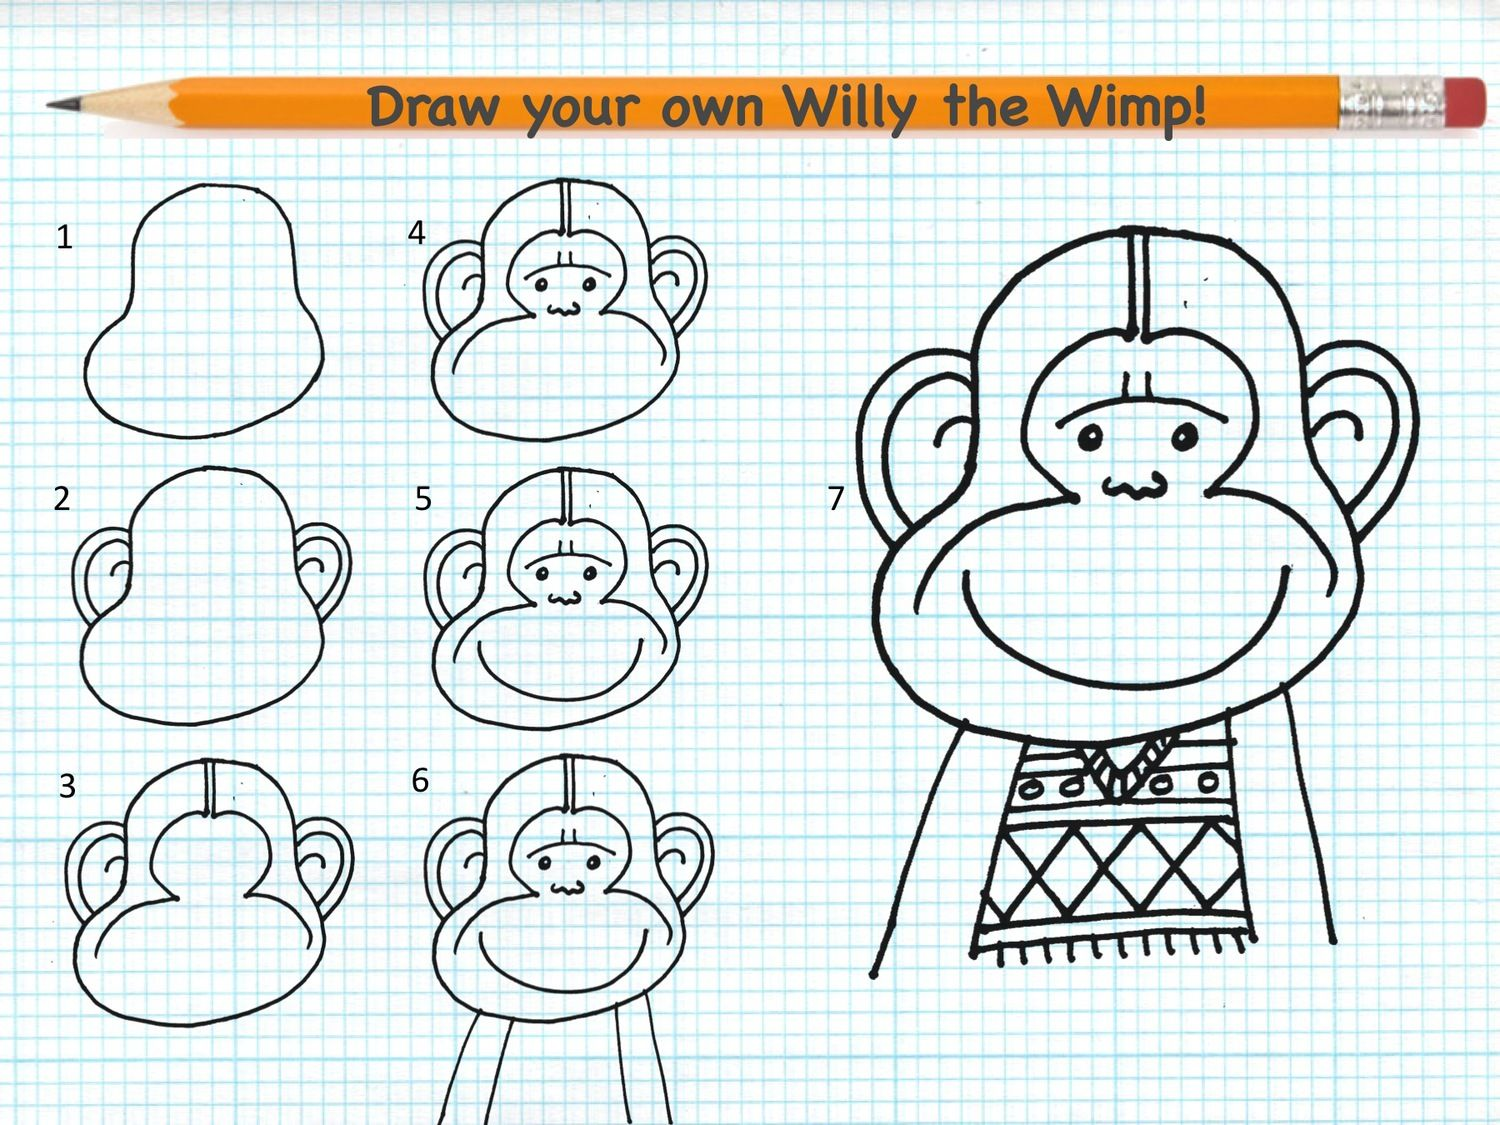 Workbooks willy the wimp worksheets : your own Willy the Wimp